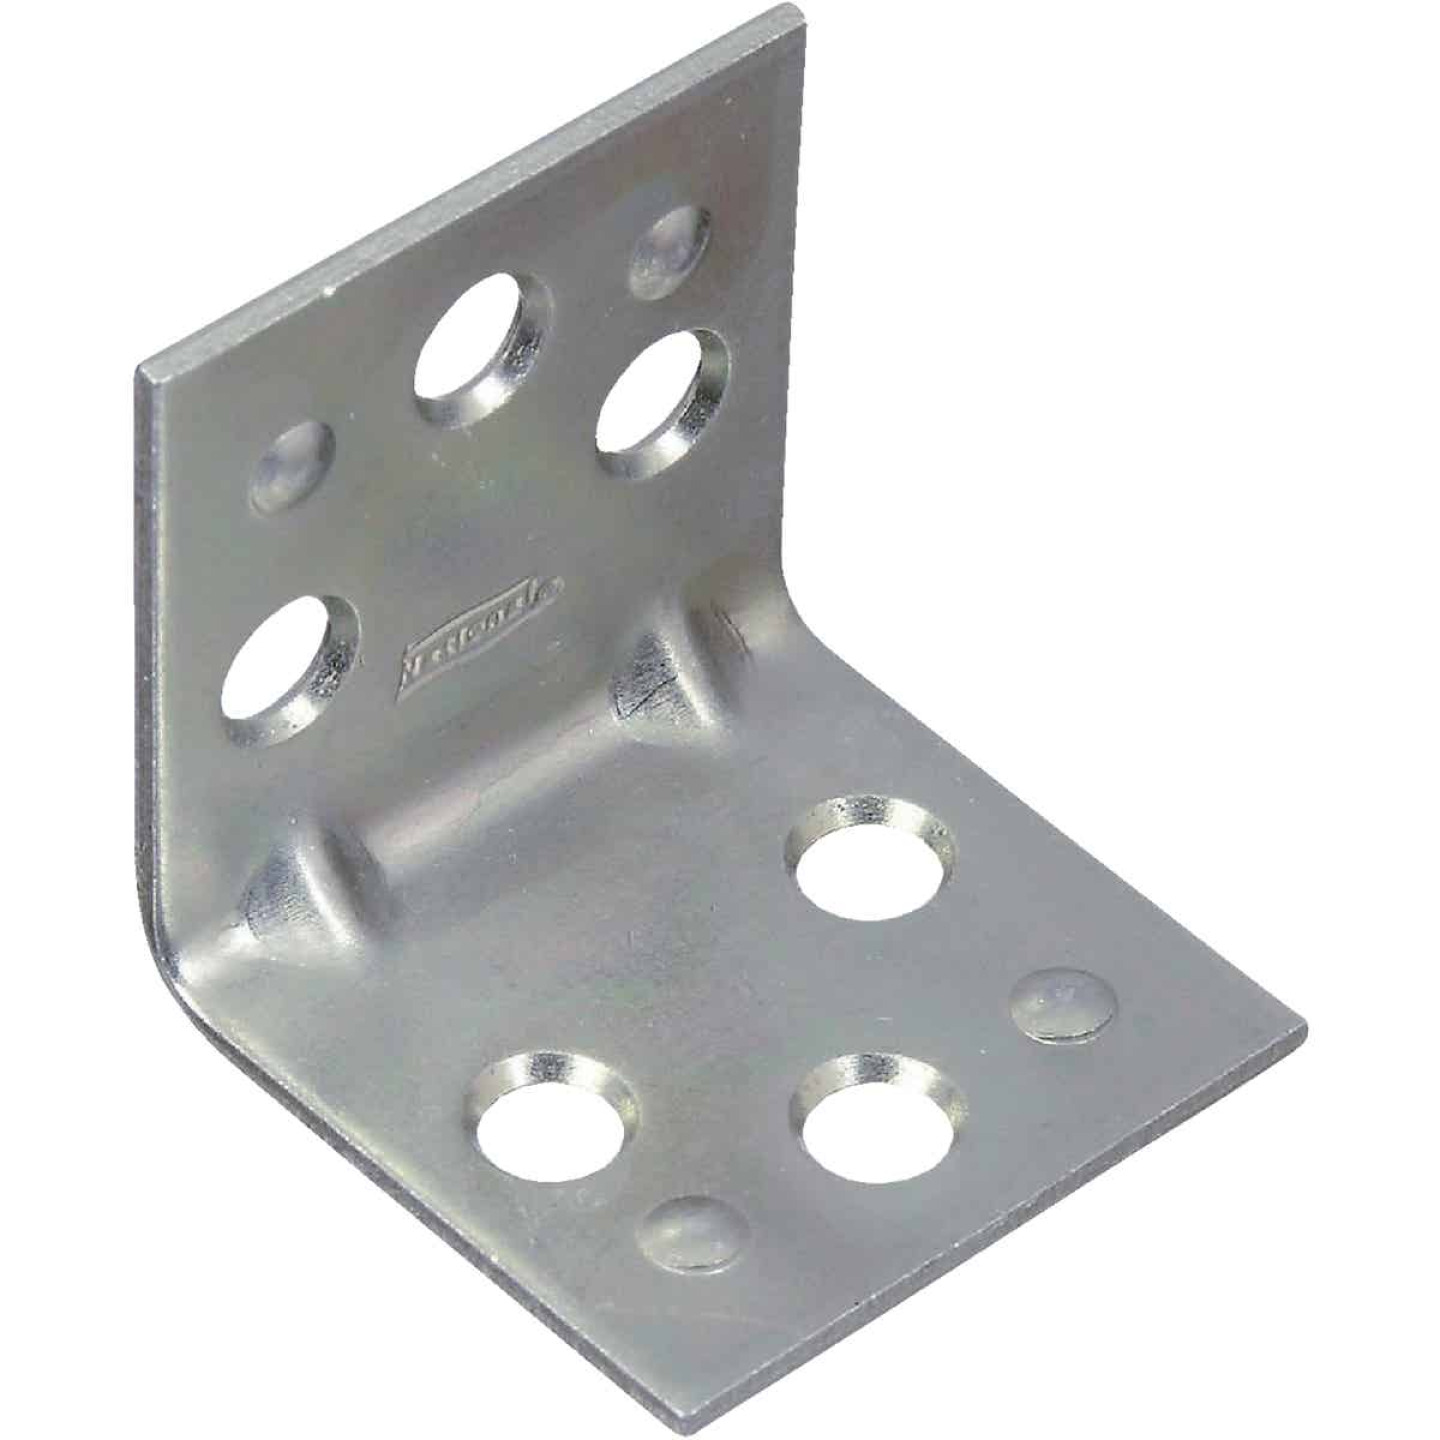 National Catalog V121 1-1/2 In. x 1-1/2 In. Double Wide Zinc Corner Brace Image 1